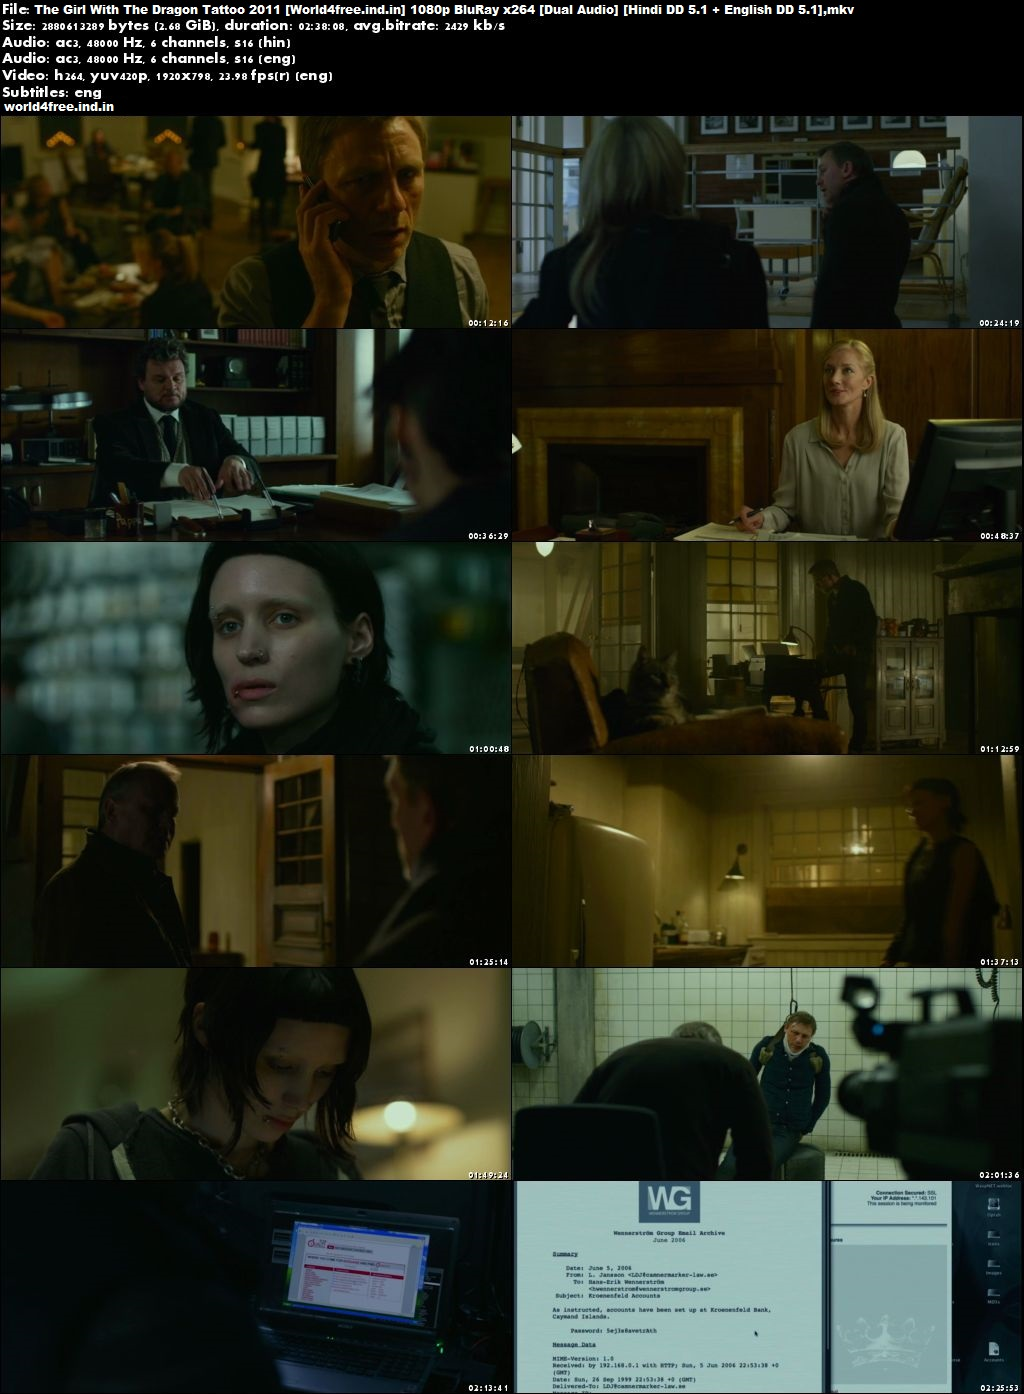 The Girl with the Dragon Tattoo 2011 world4free.ind.in Dual Audio 1080p Download